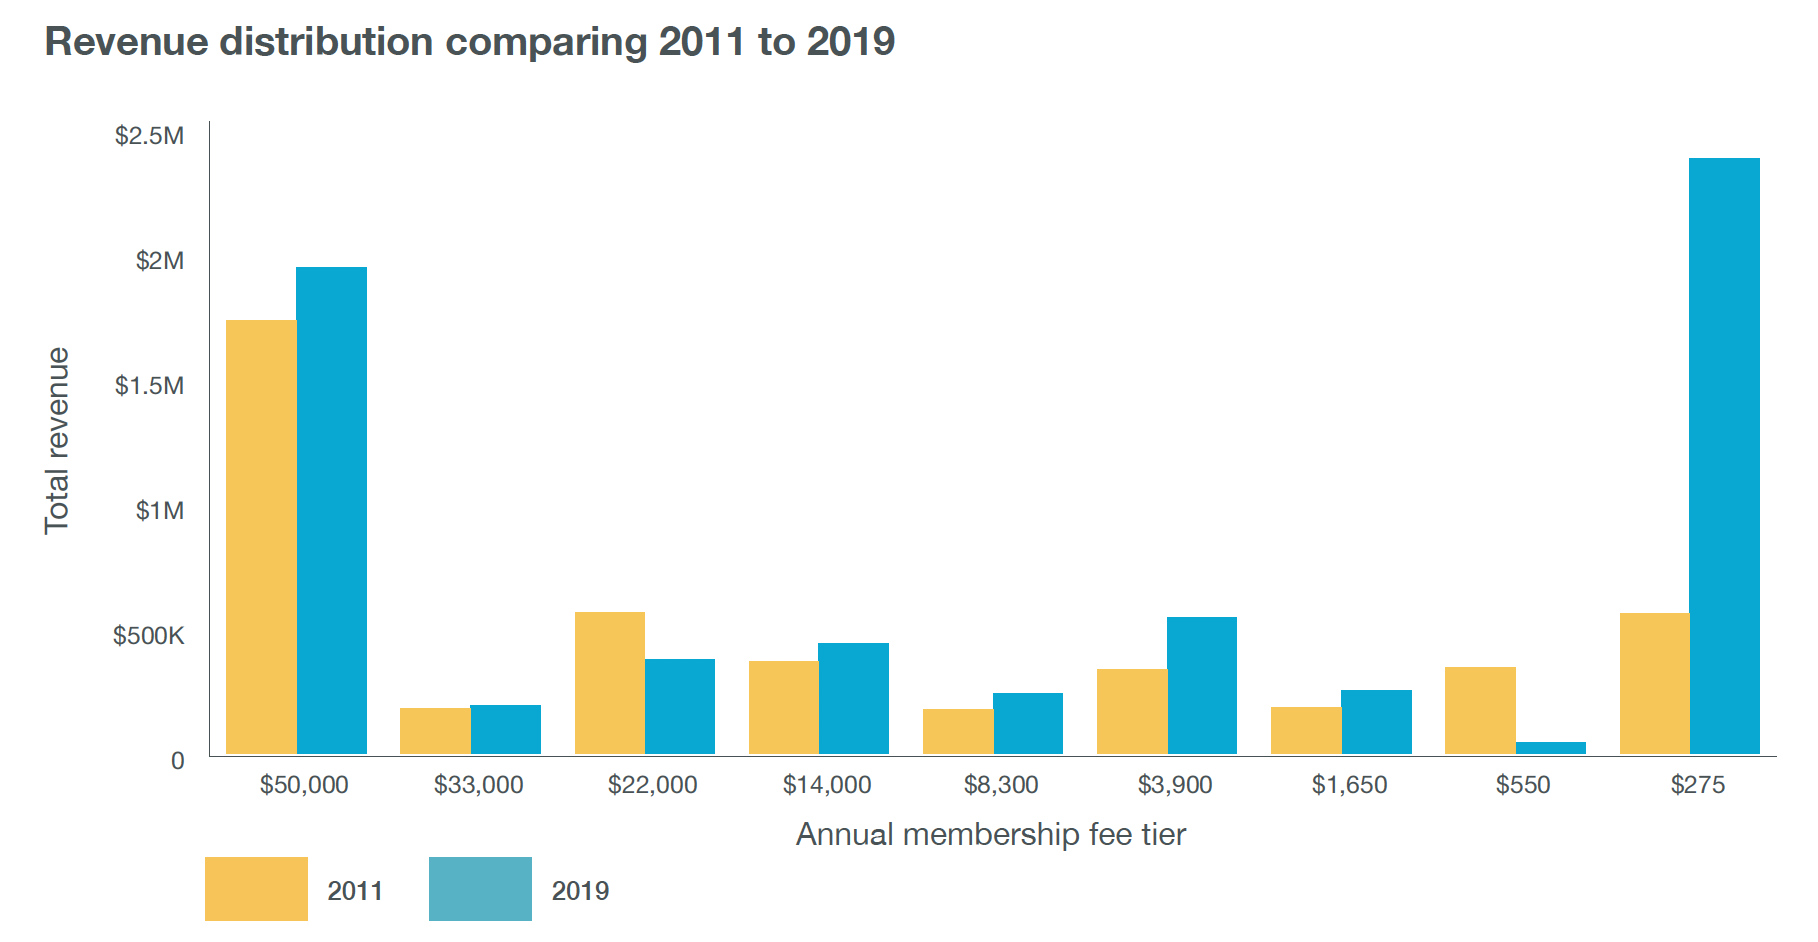 Revenue distribution by membership fee tier, comparing 2011 with 2019